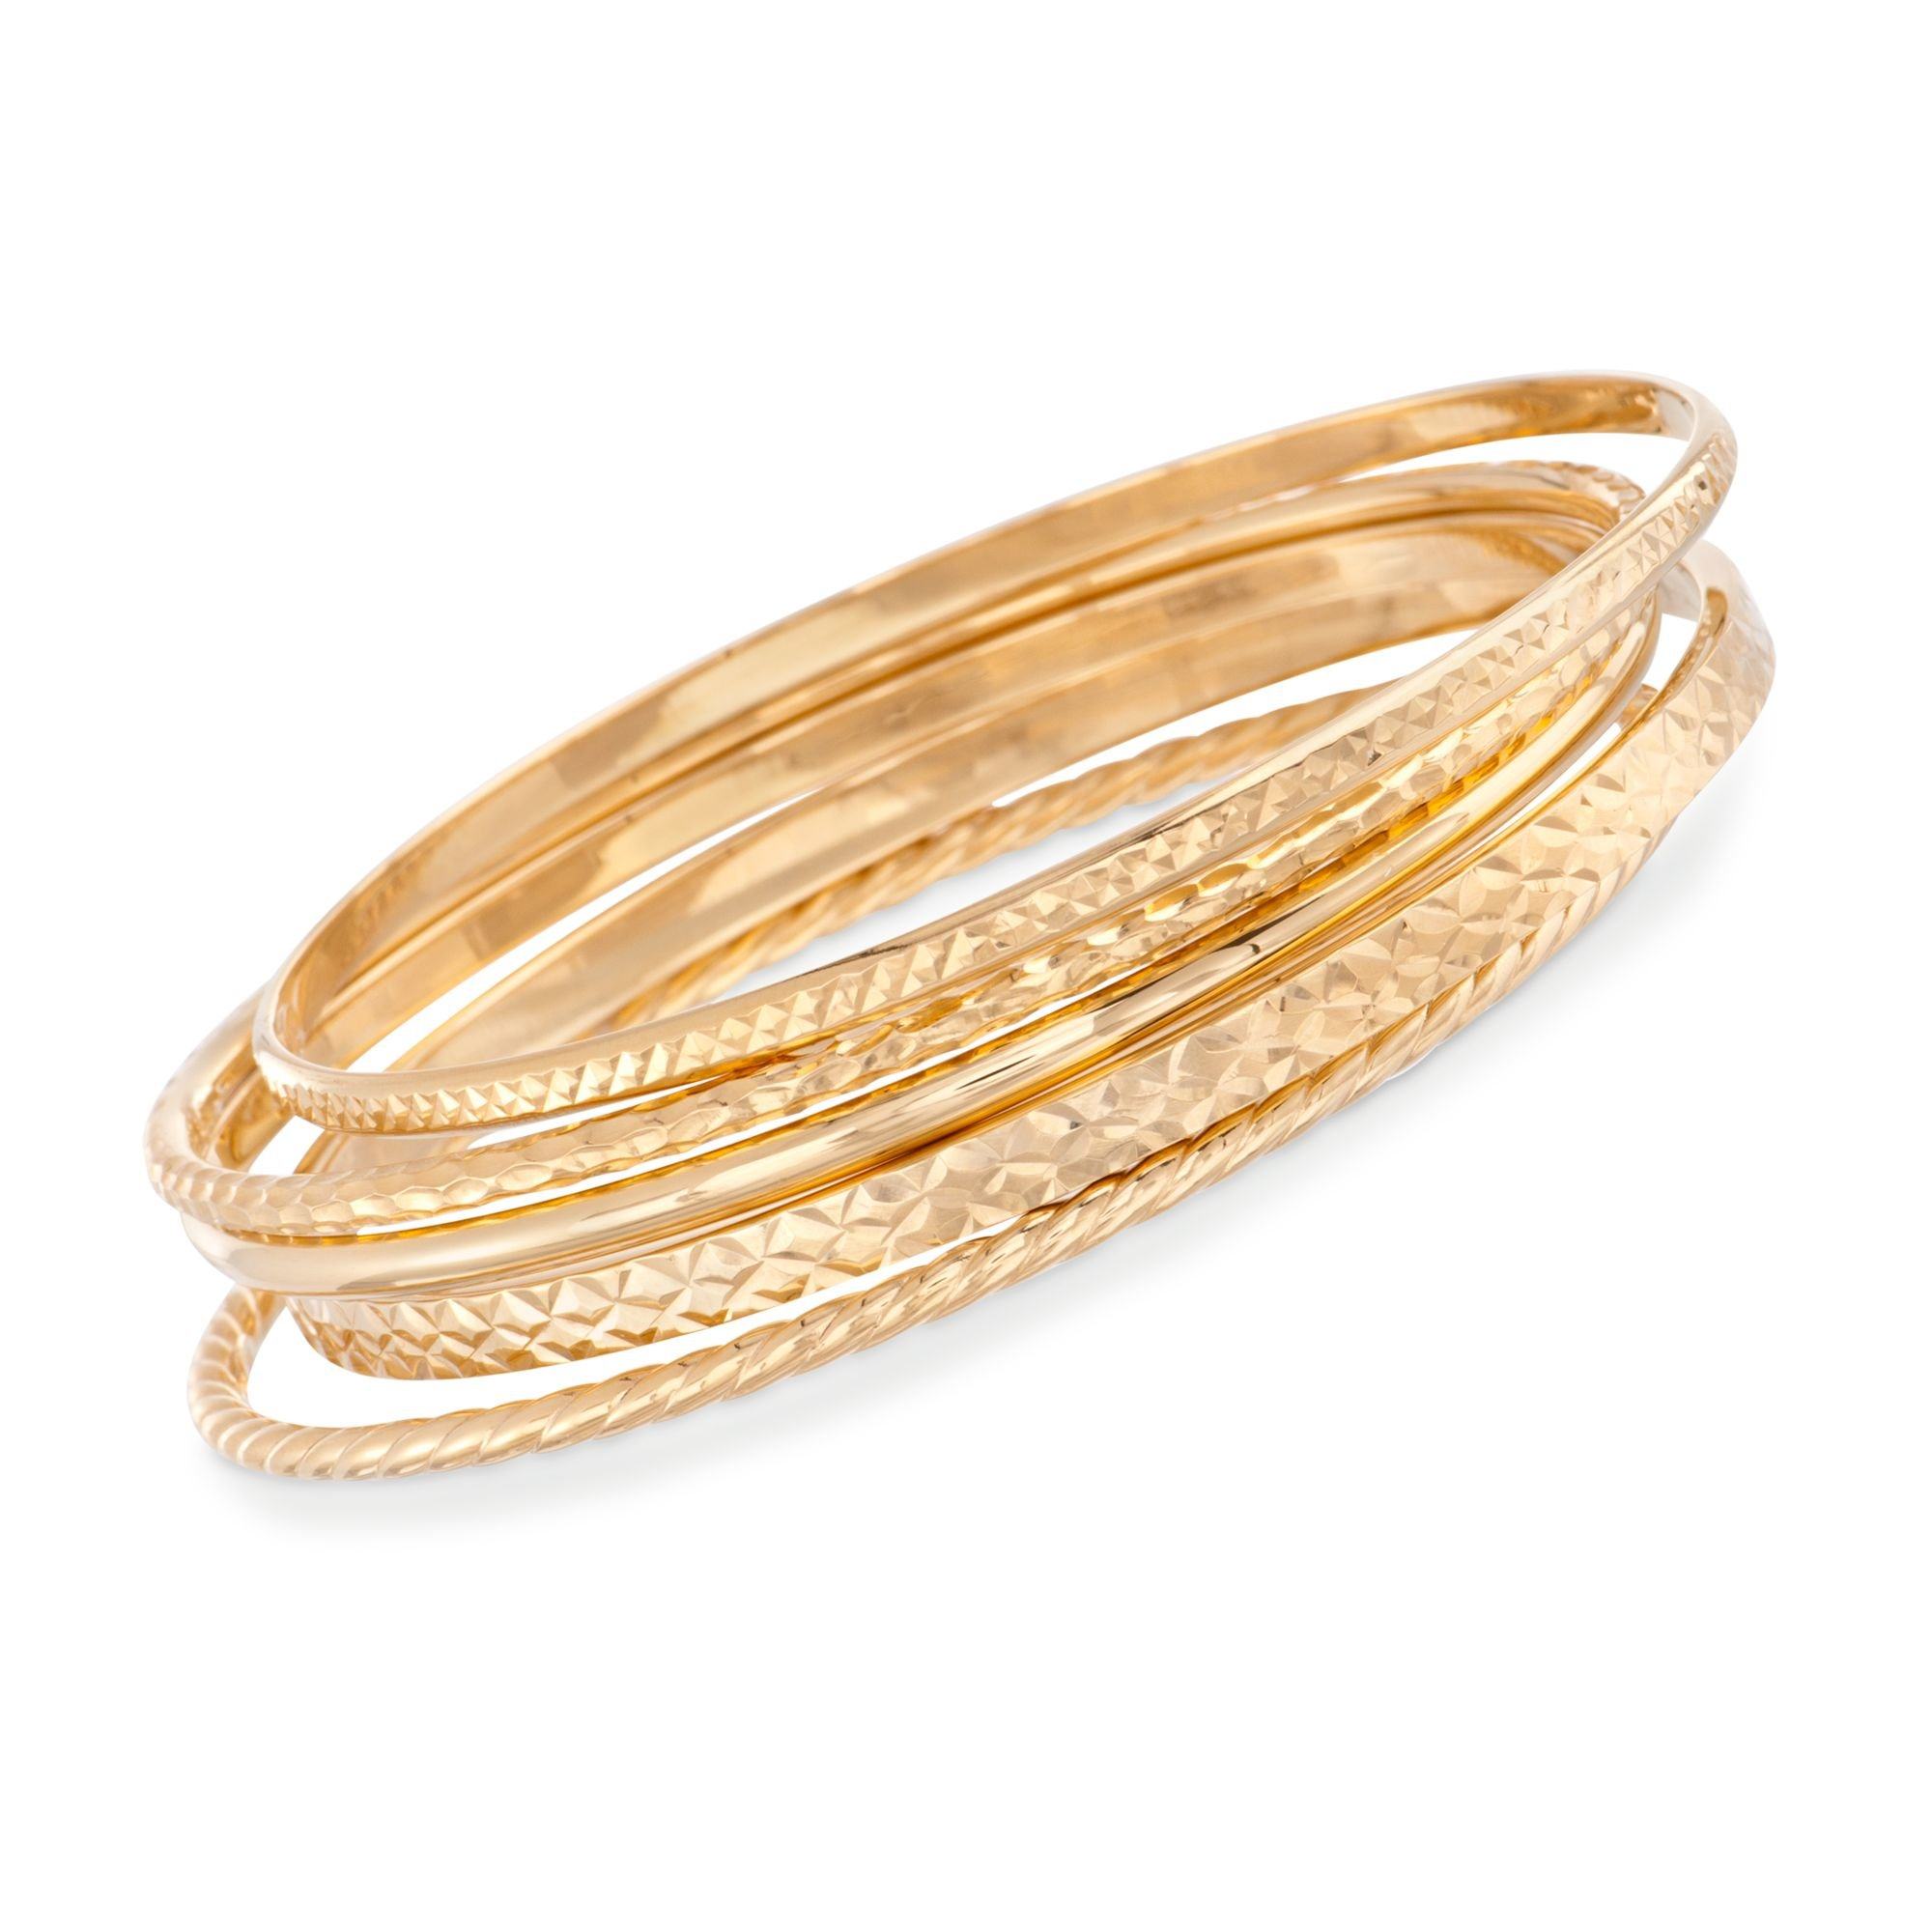 Ross-Simons 18kt Gold Over Sterling Jewelry Set: Five Textured Bangle Bracelets